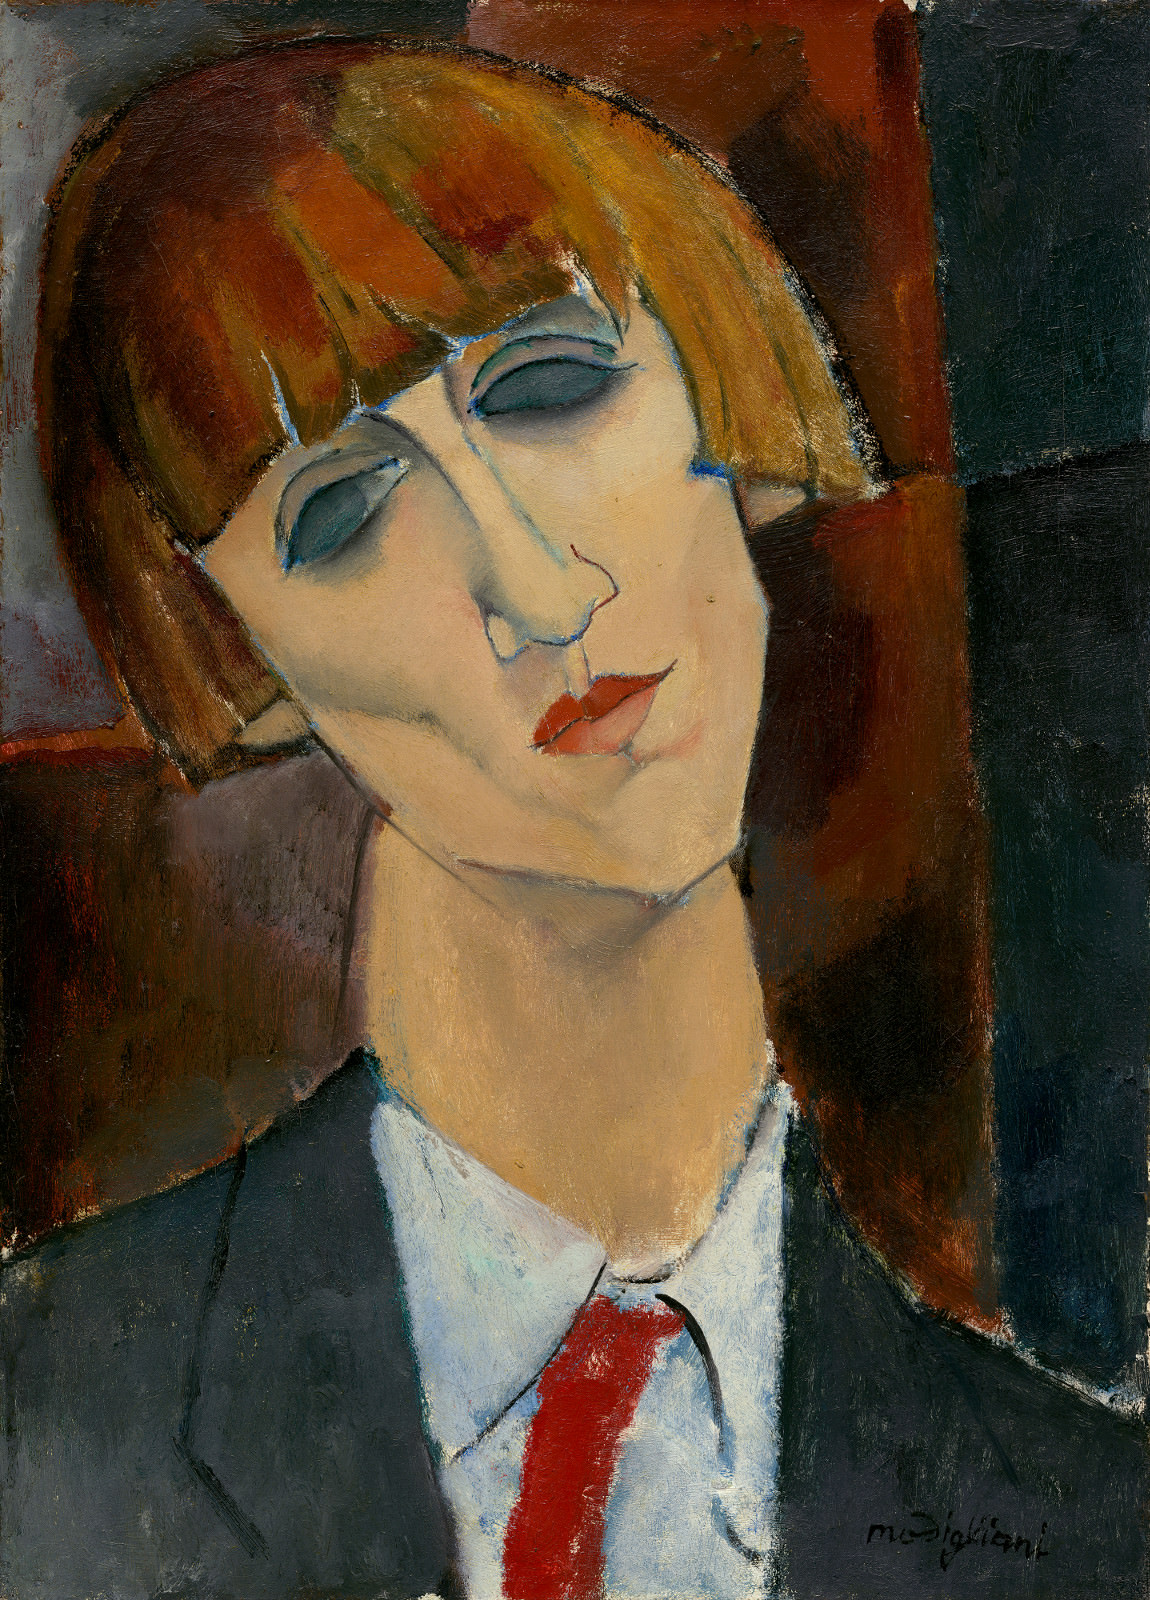 Fig. 7 - Madamme Kisling, Amedeo Modigliani, 1917, óleo sobre lienzo, 46,2 x 33,2 cm. National Gallery of Art, Washington. Colección de Chester Dale.